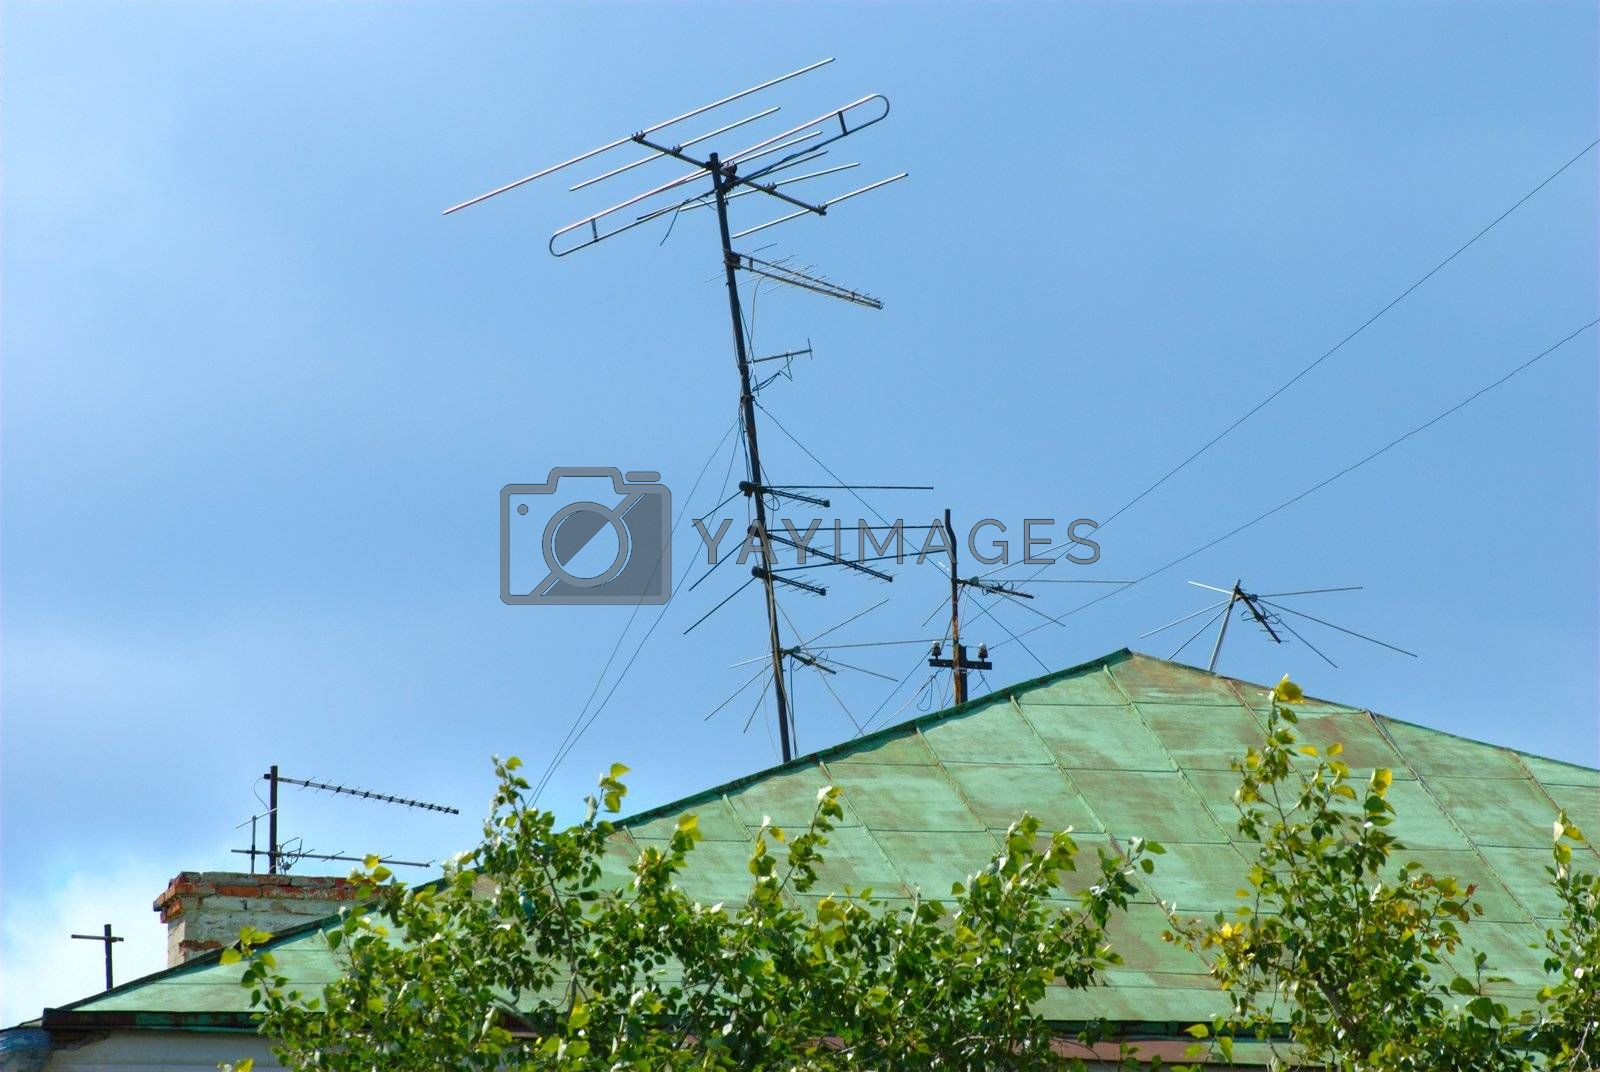 Royalty free image of TV antenna by Light